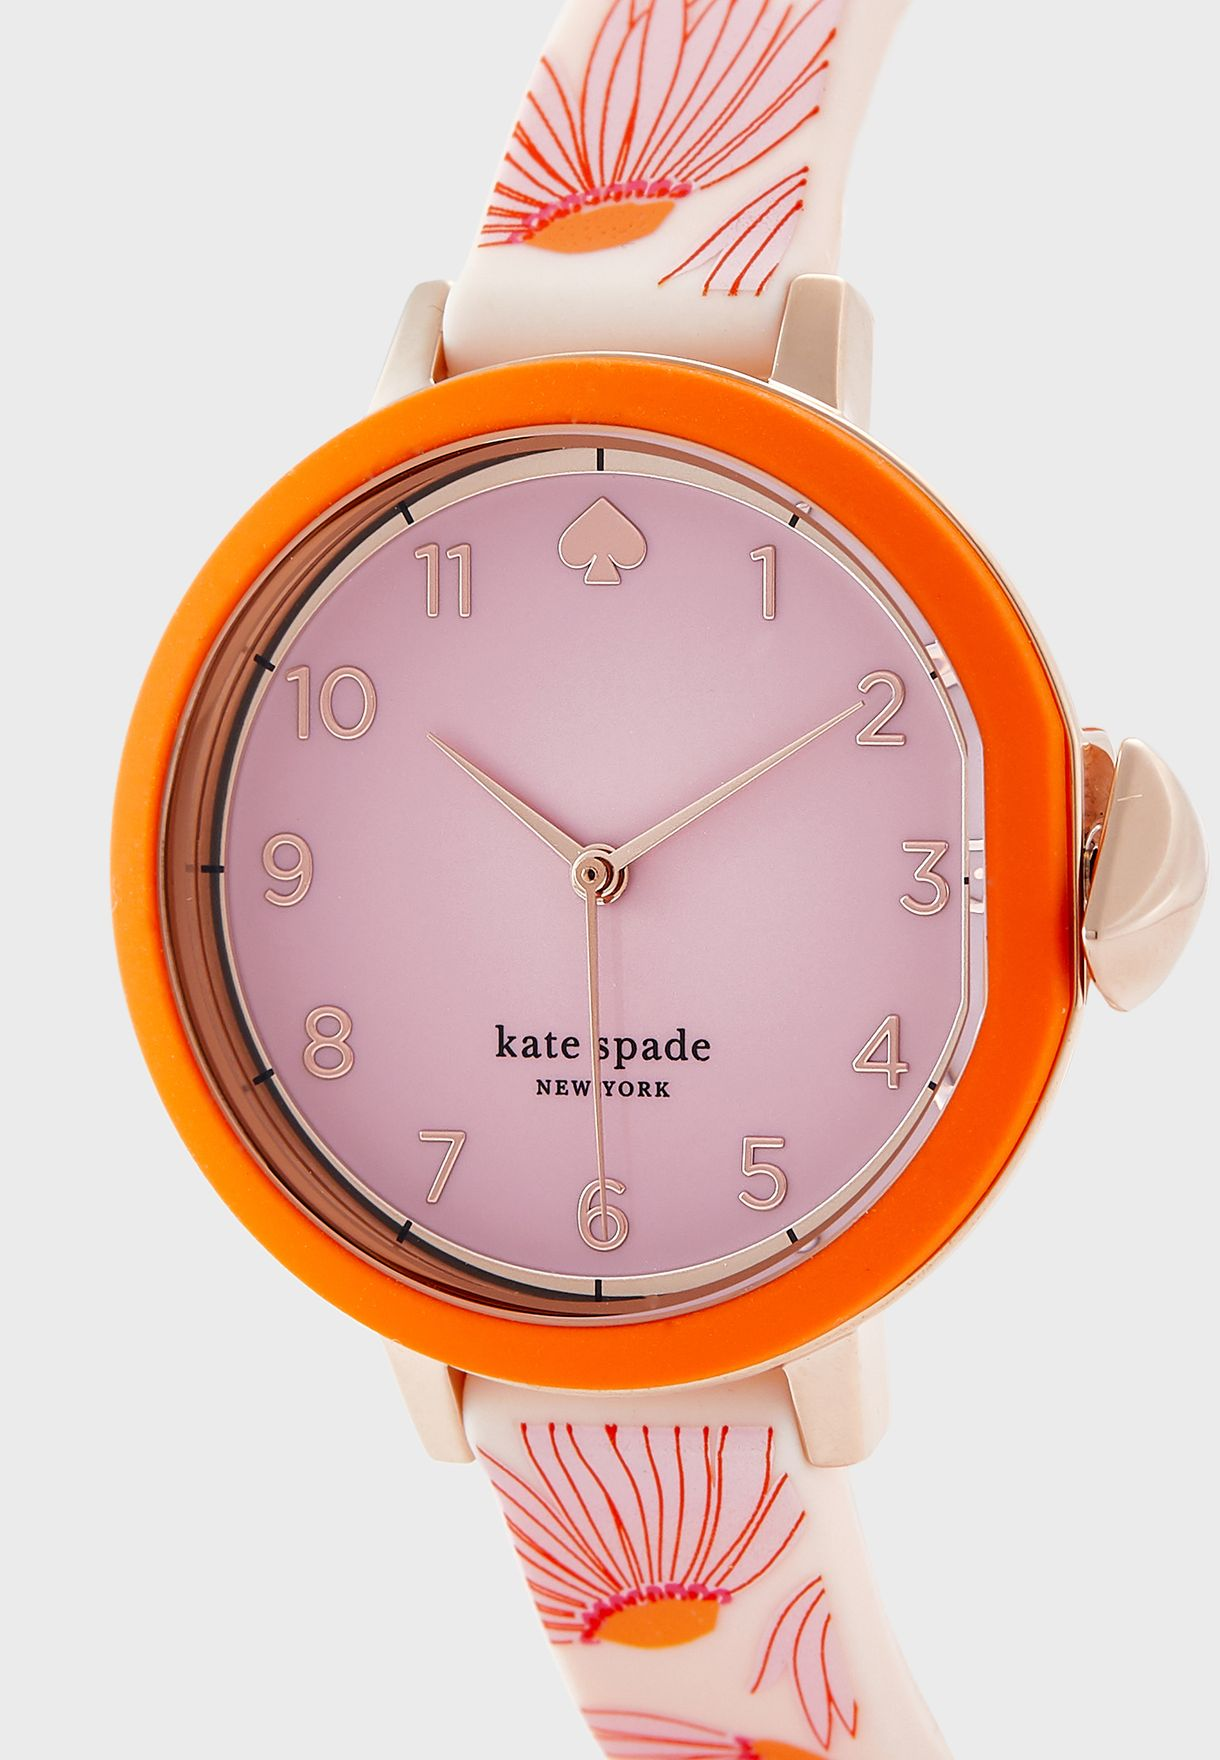 KSW1615 Park Row Analog Watch